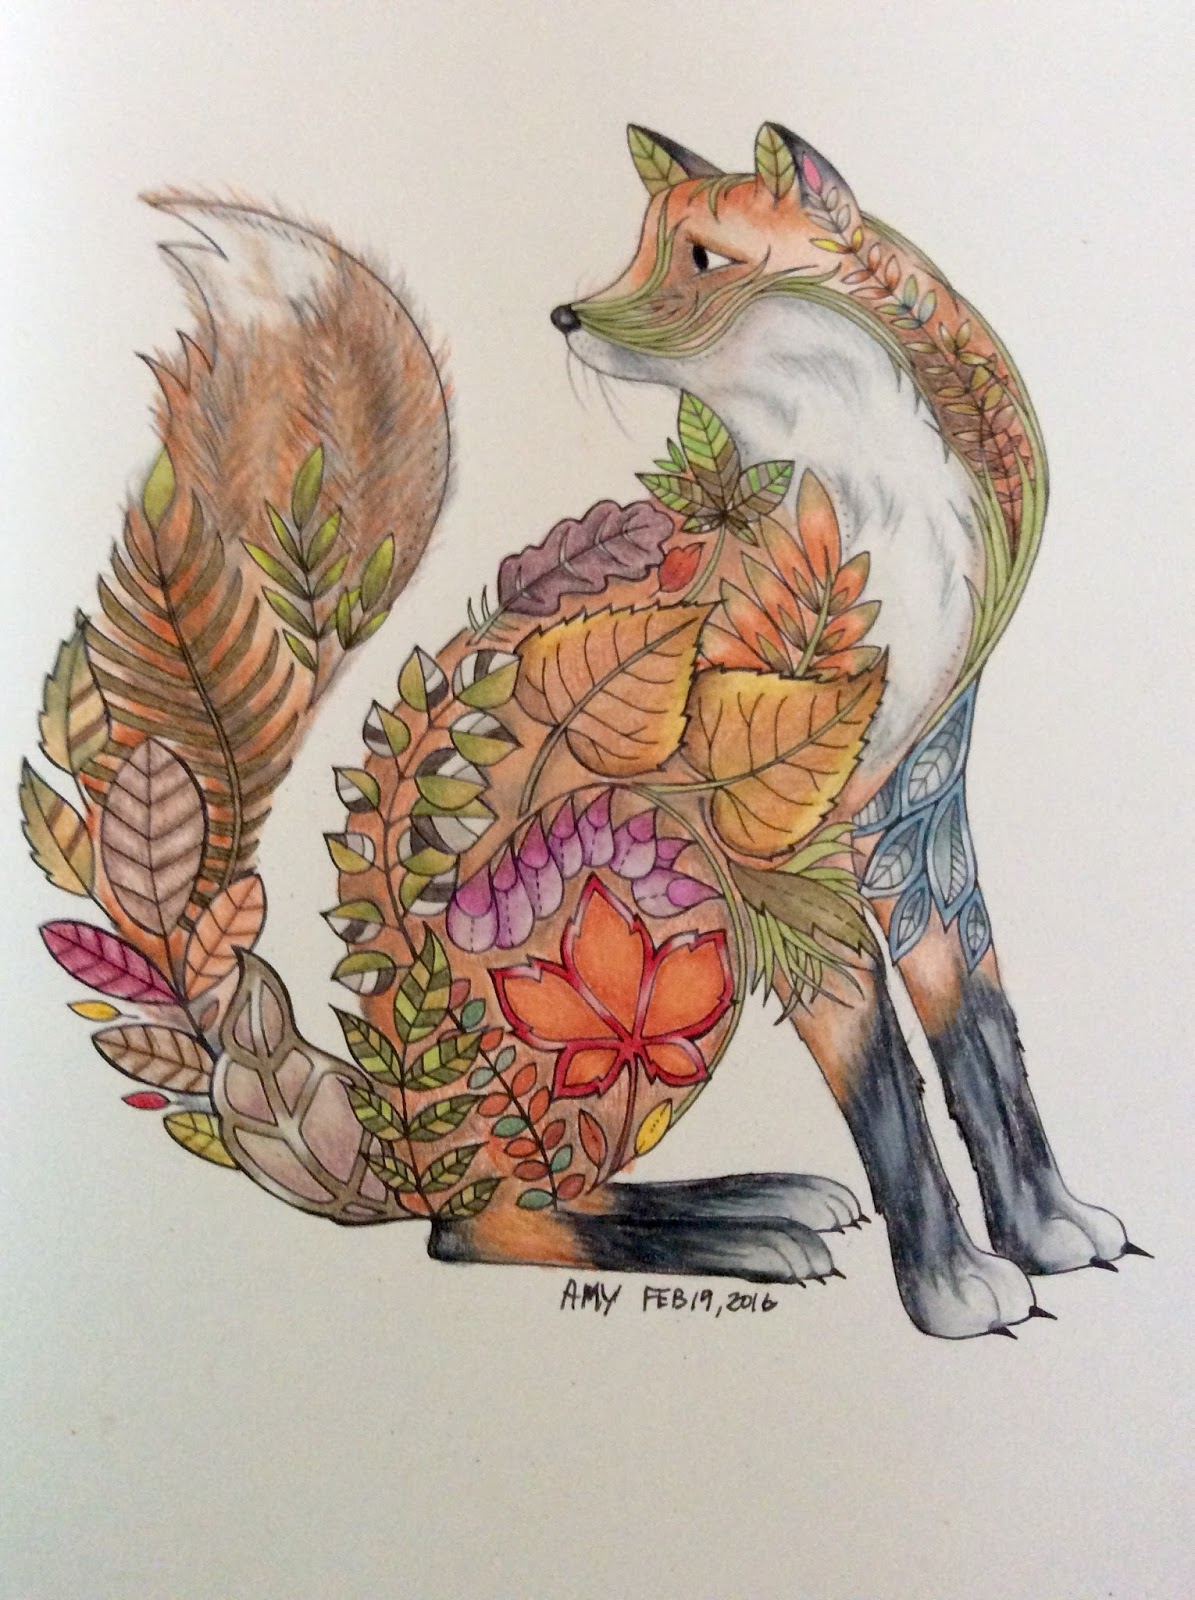 I Picked Out This Fox From My Johanna Basford Book To Color And Set Go Beyond Just Adding Going For Texture Fur Redux